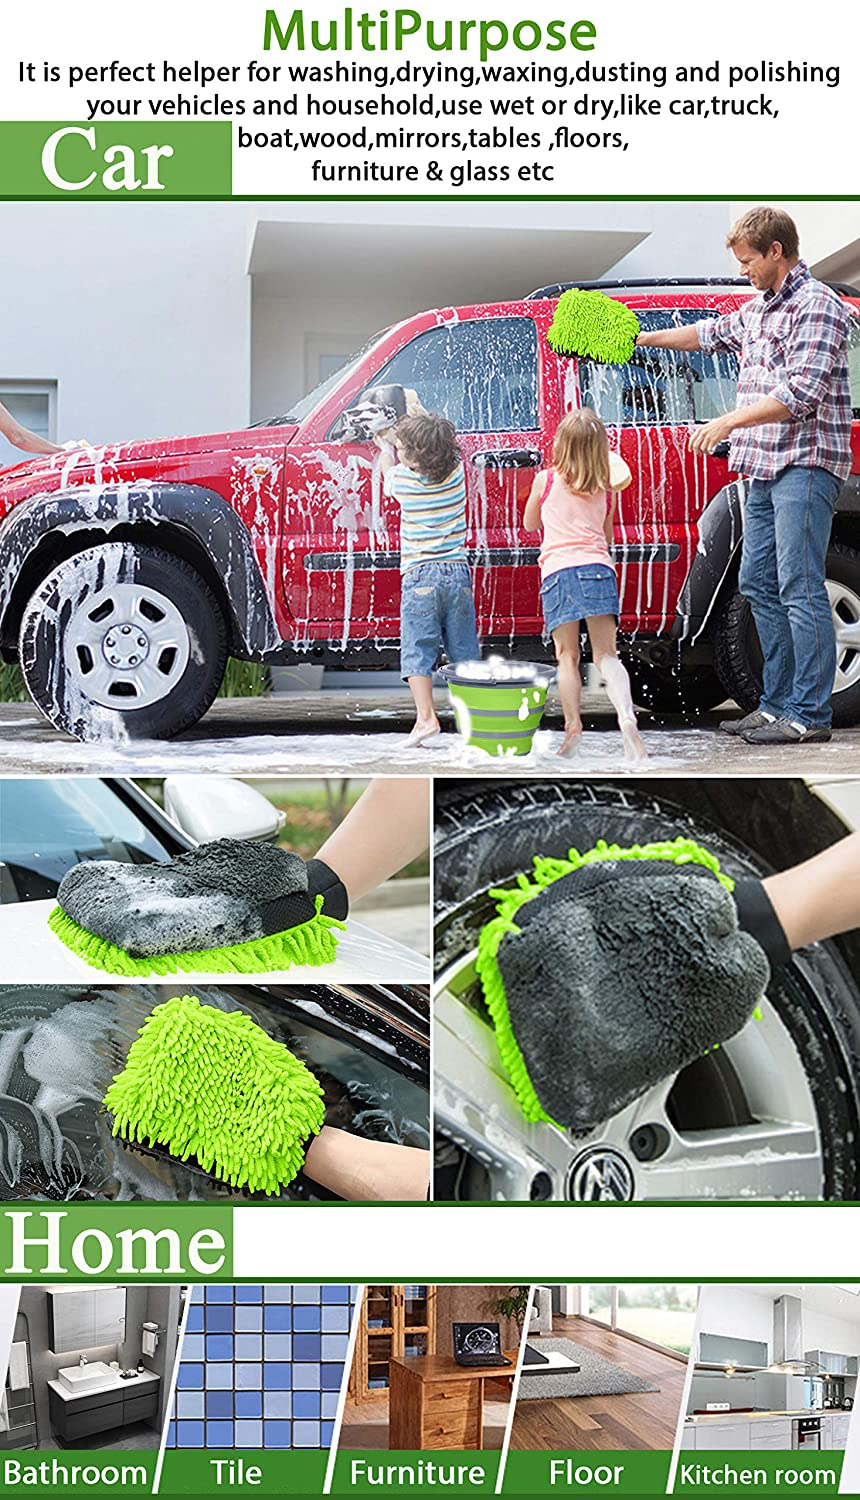 GreatCool 3 in 1 Car Wash Mitt Lint Free Scratch Free Not Hurt Paint Glove Sponge Soap Towel Clean Tools Kits for Car Auto Household Home Kitchen Cleaning Coral Velvet Chenille Microfiber Weave